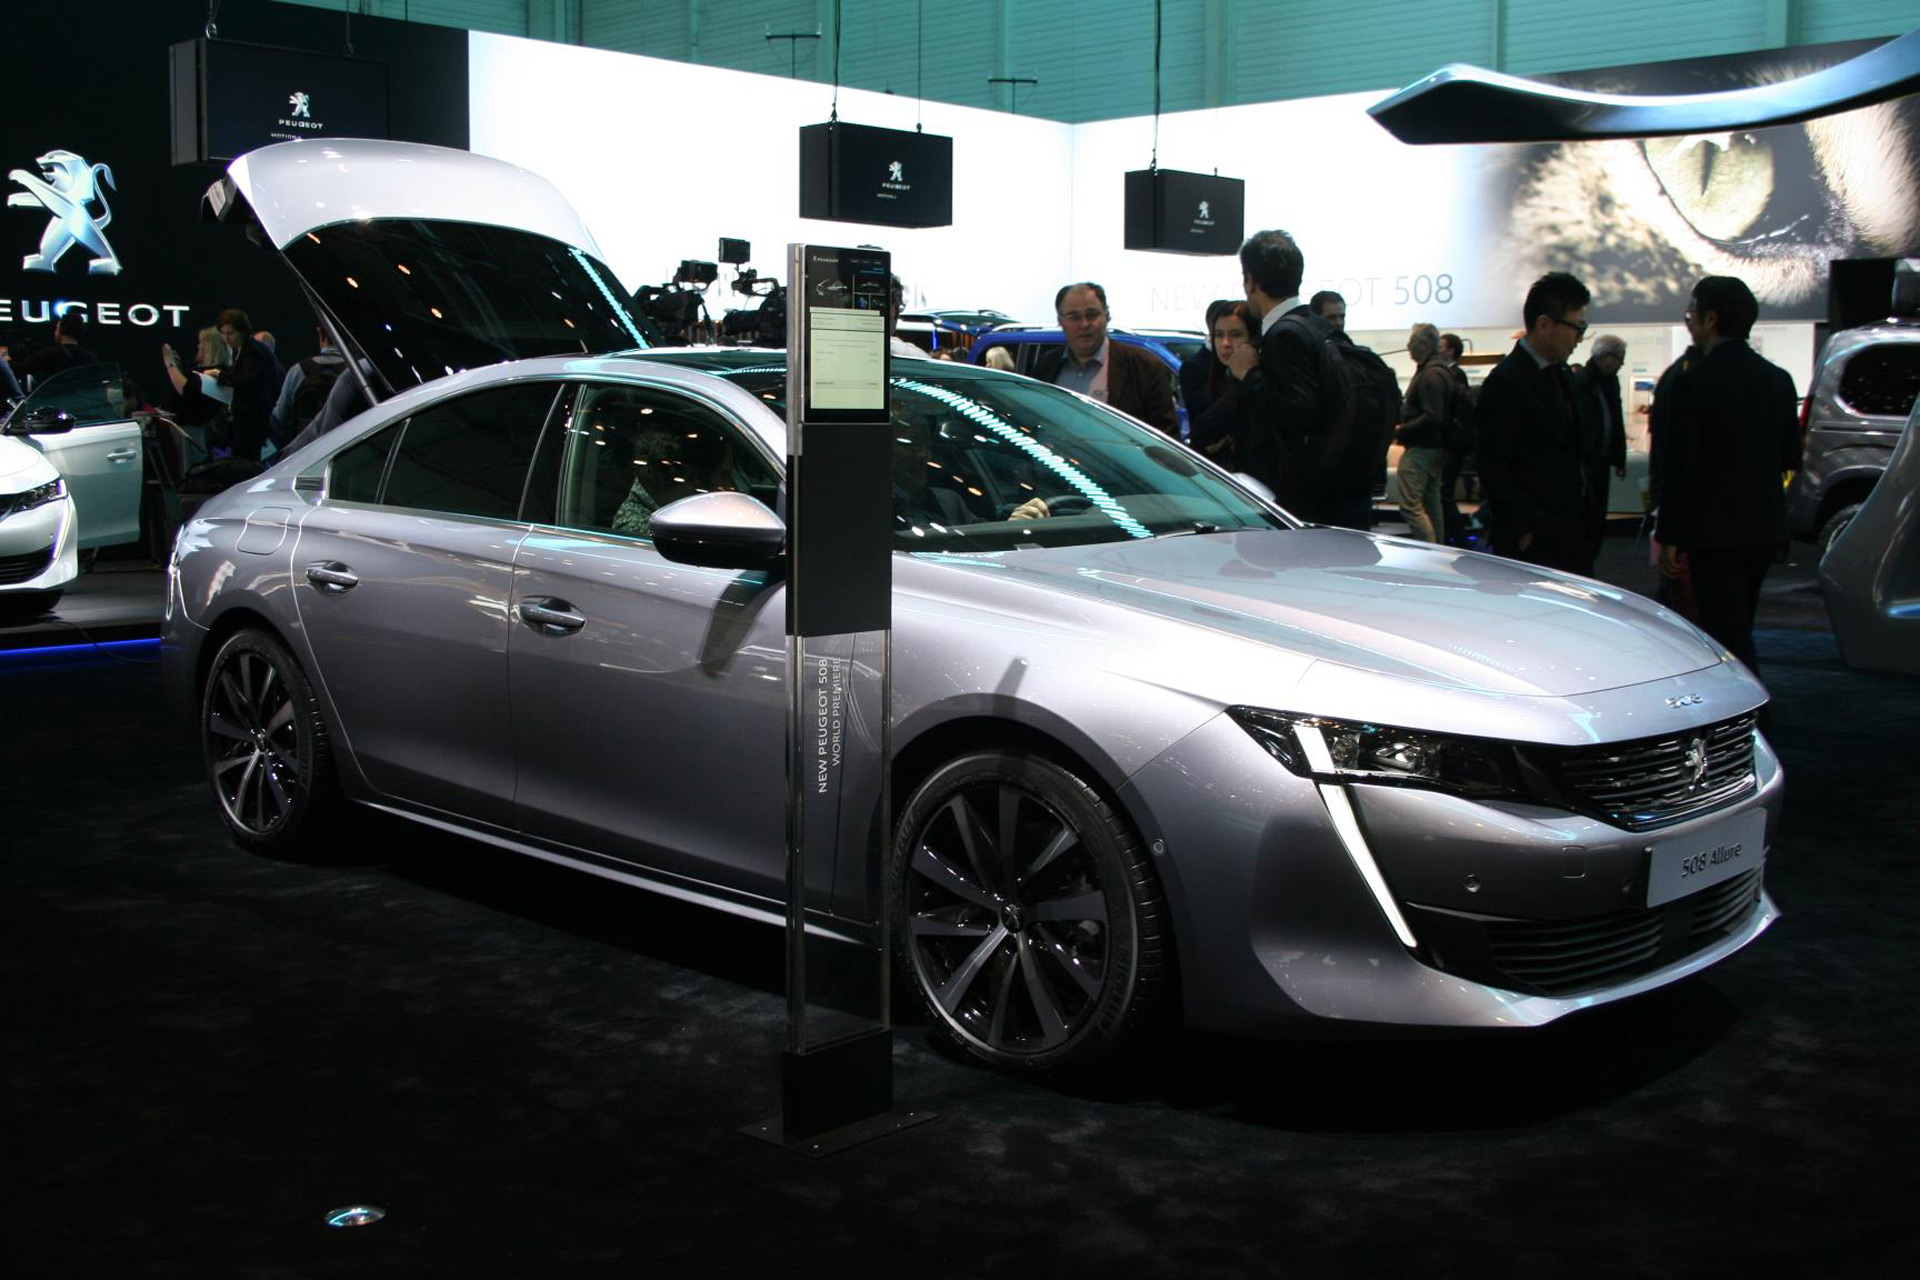 Peugeot 508 Strikes A Chord With Impressive Design